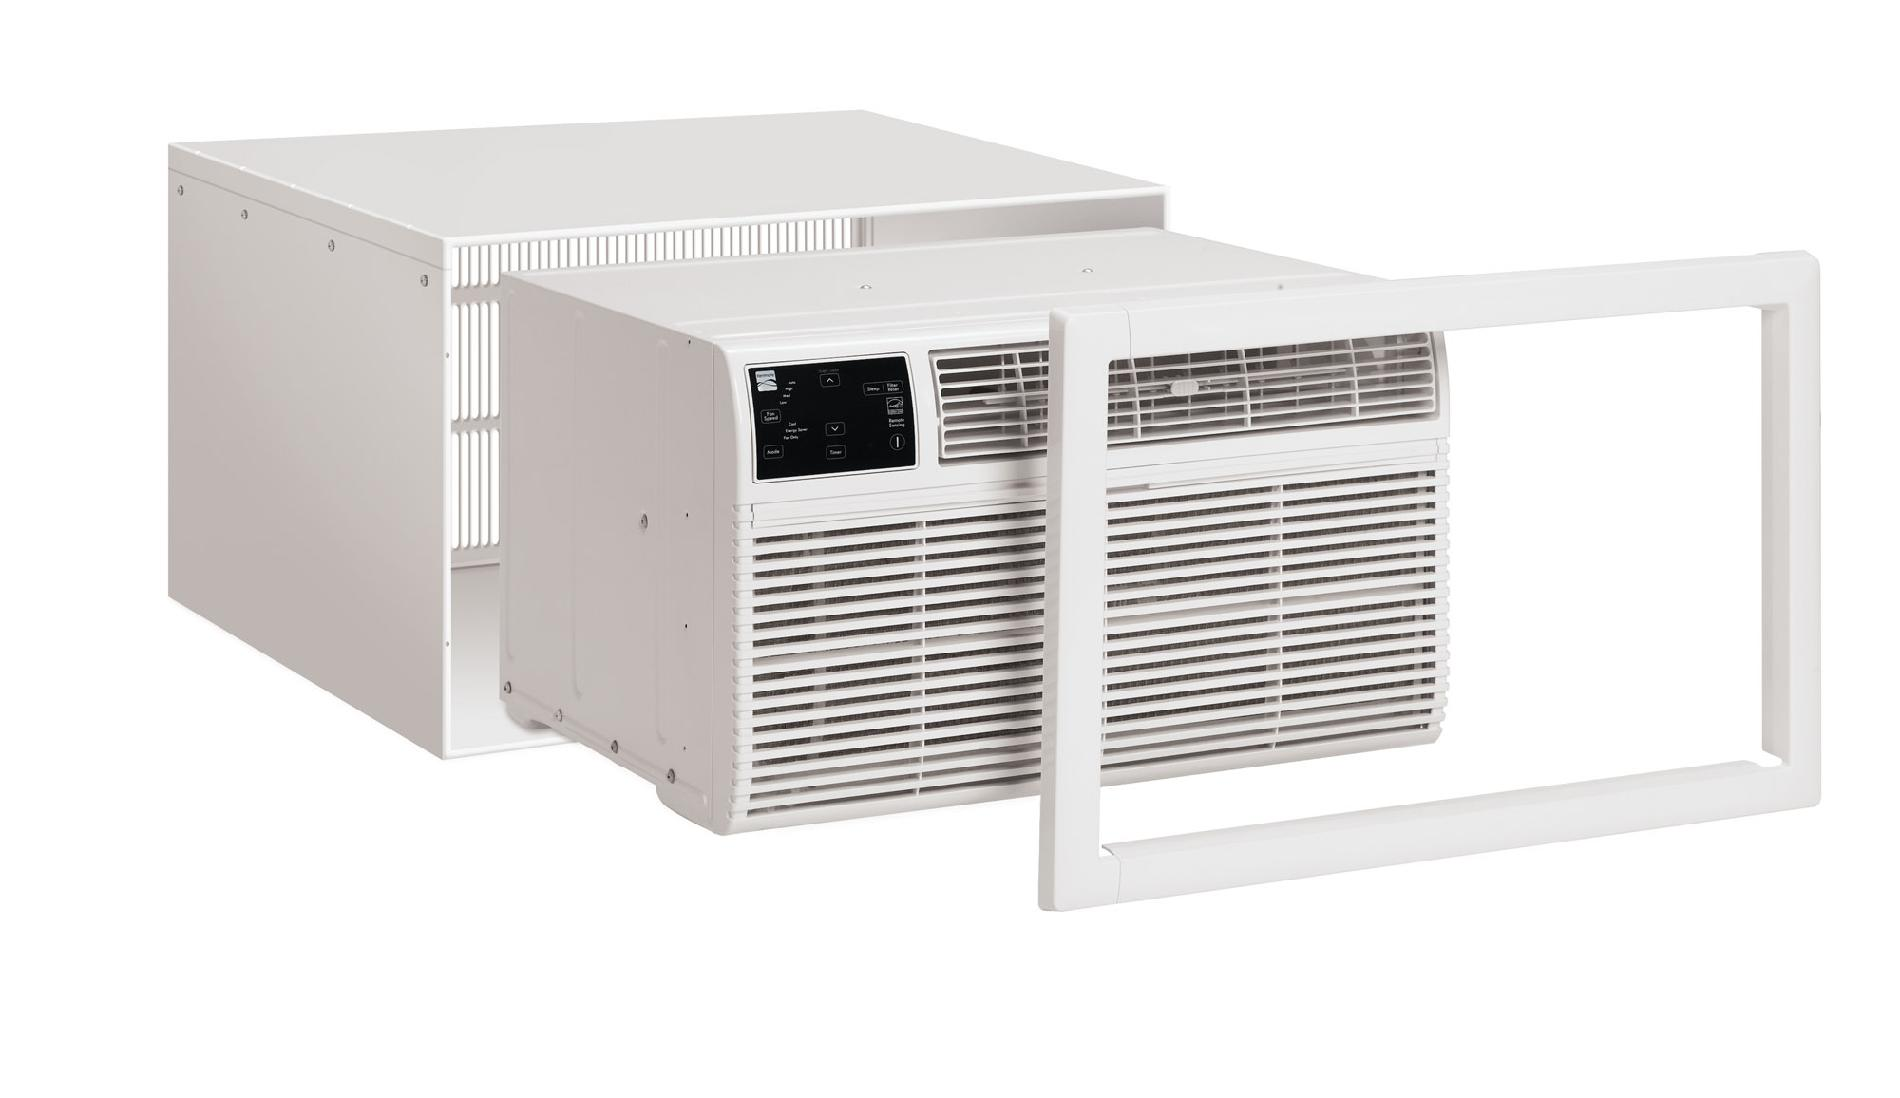 Kenmore 8,000 BTU Through-the-Wall Room Air Conditioner